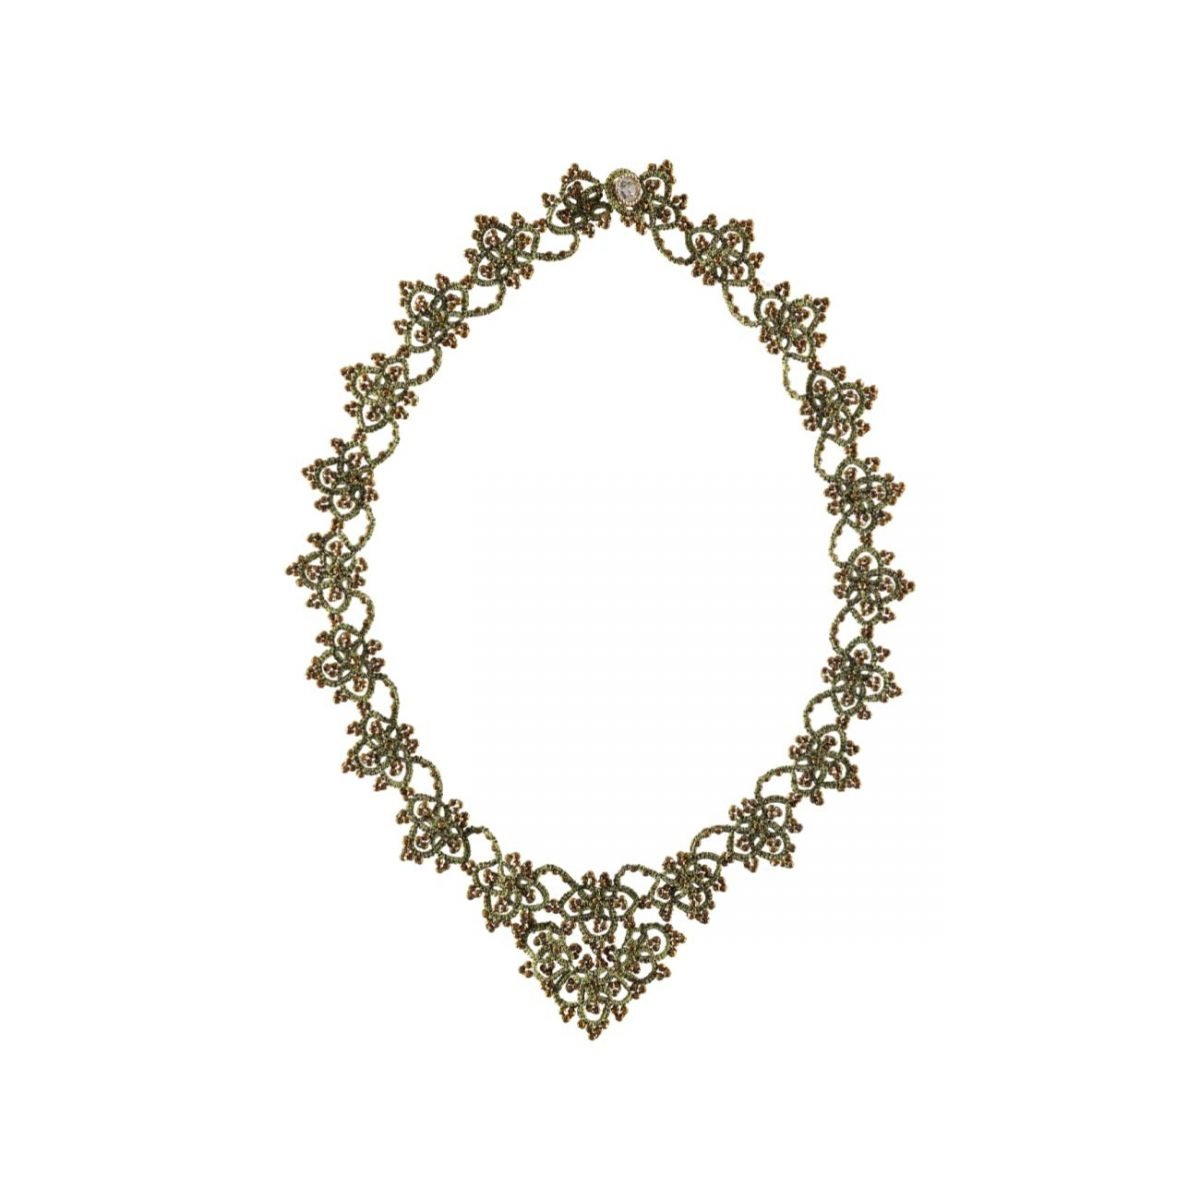 Audrey Silver Gold Necklace